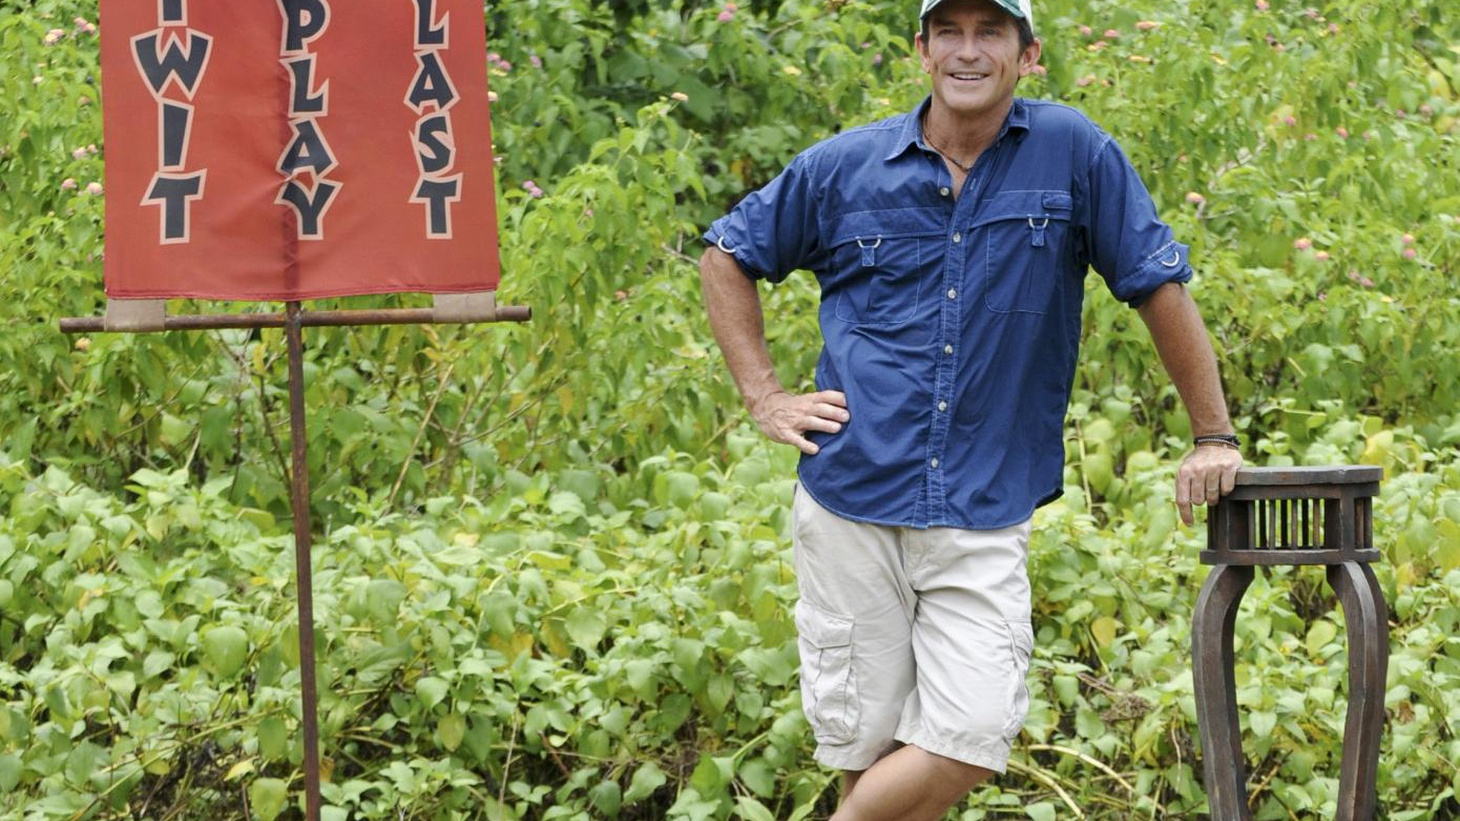 Emmy winning reality show host Jeff Probst talks strategy, storytelling, and Survivor.